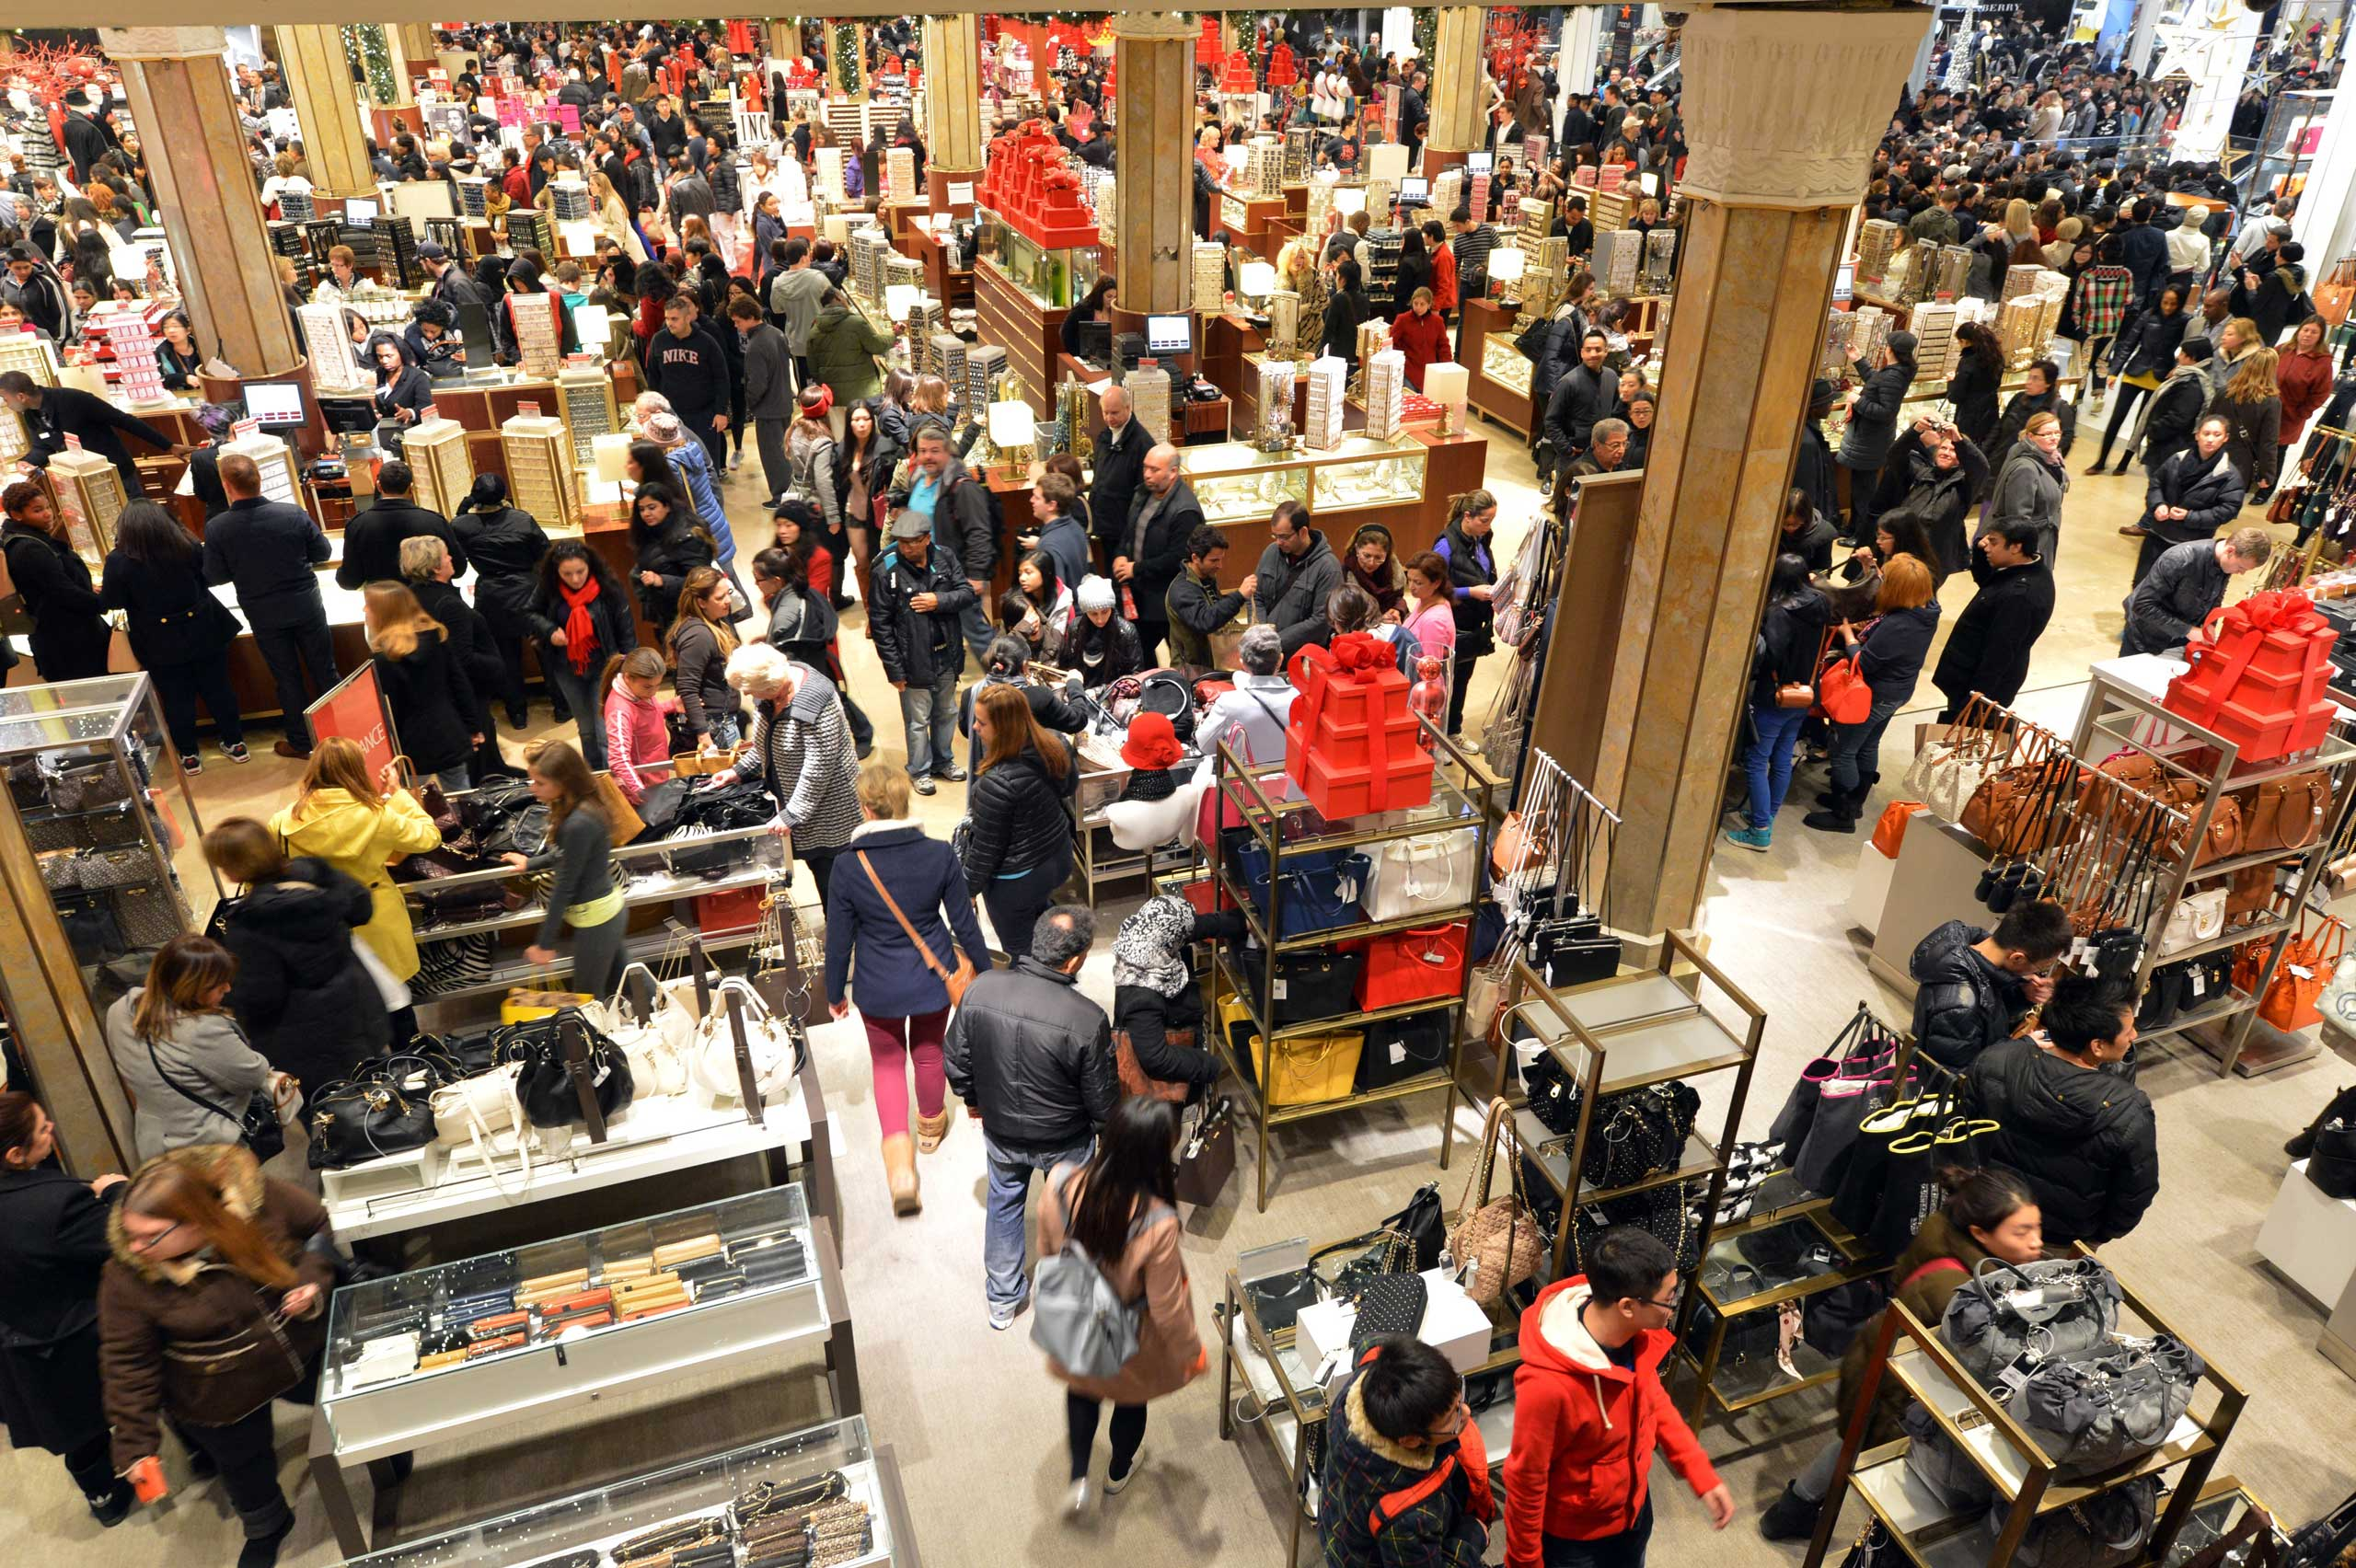 People crowd the first floor of Macy's department store as they open at midnight on Nov. 23, 2012 in New York to start the stores'  Black Friday  shopping weekend.